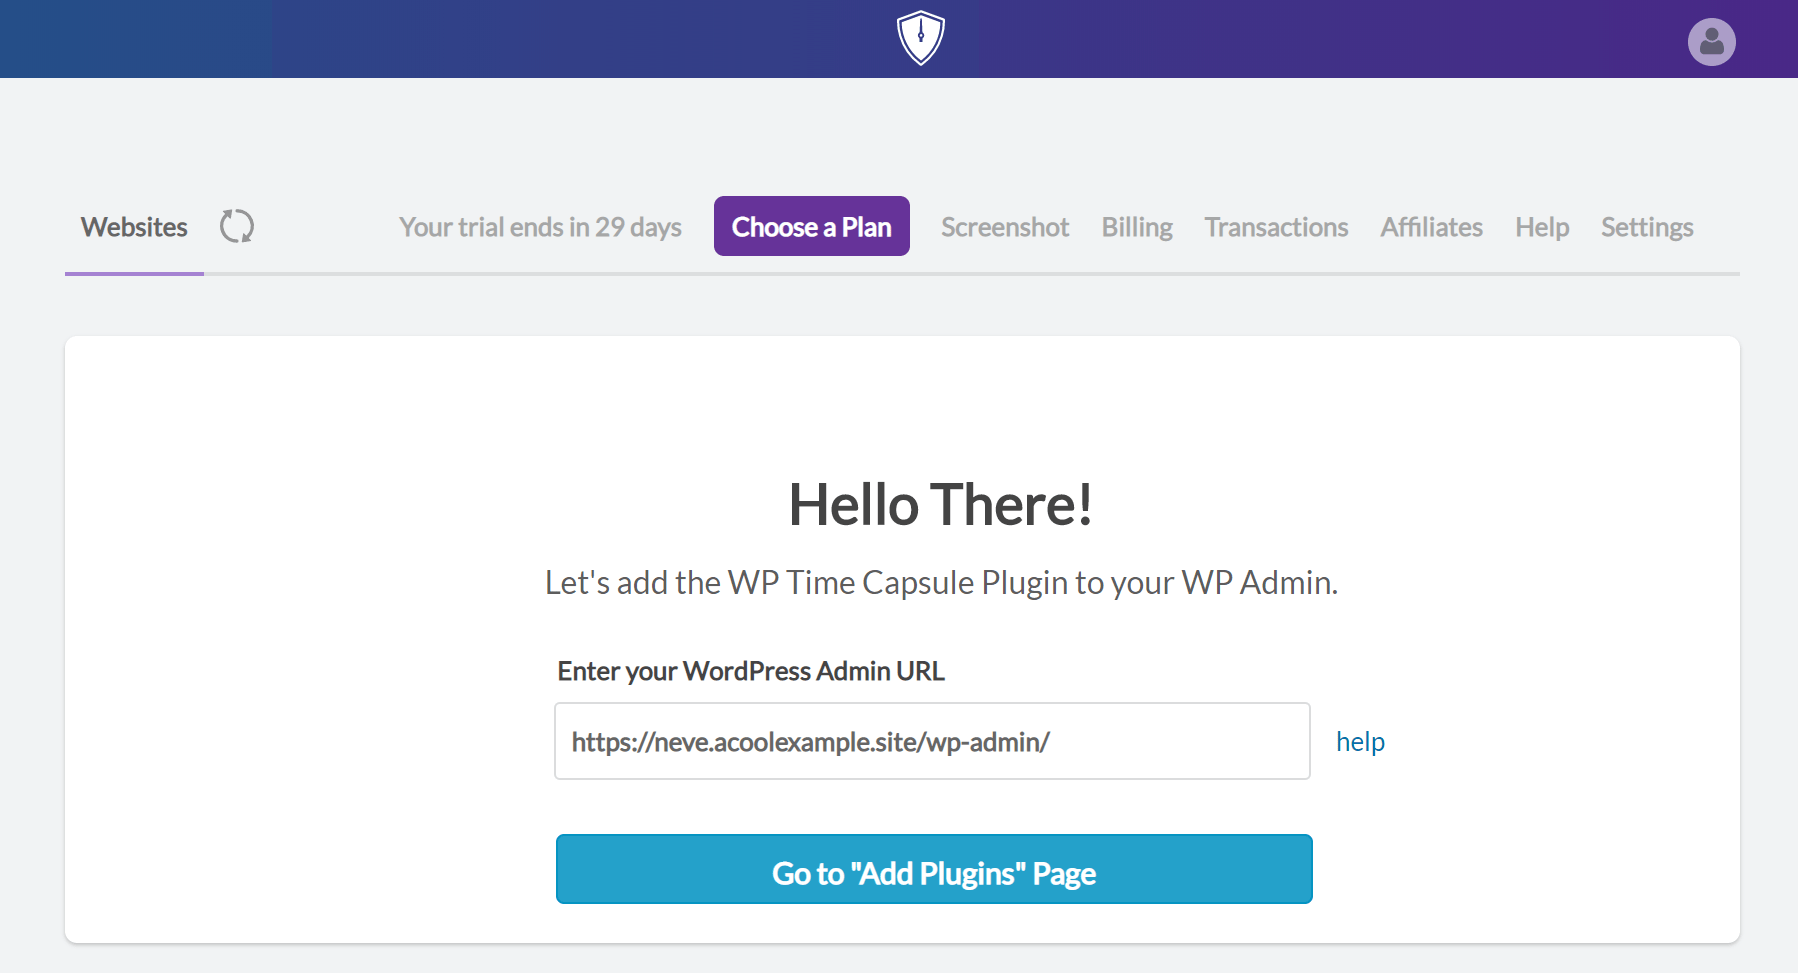 WP Time Capsule sign up